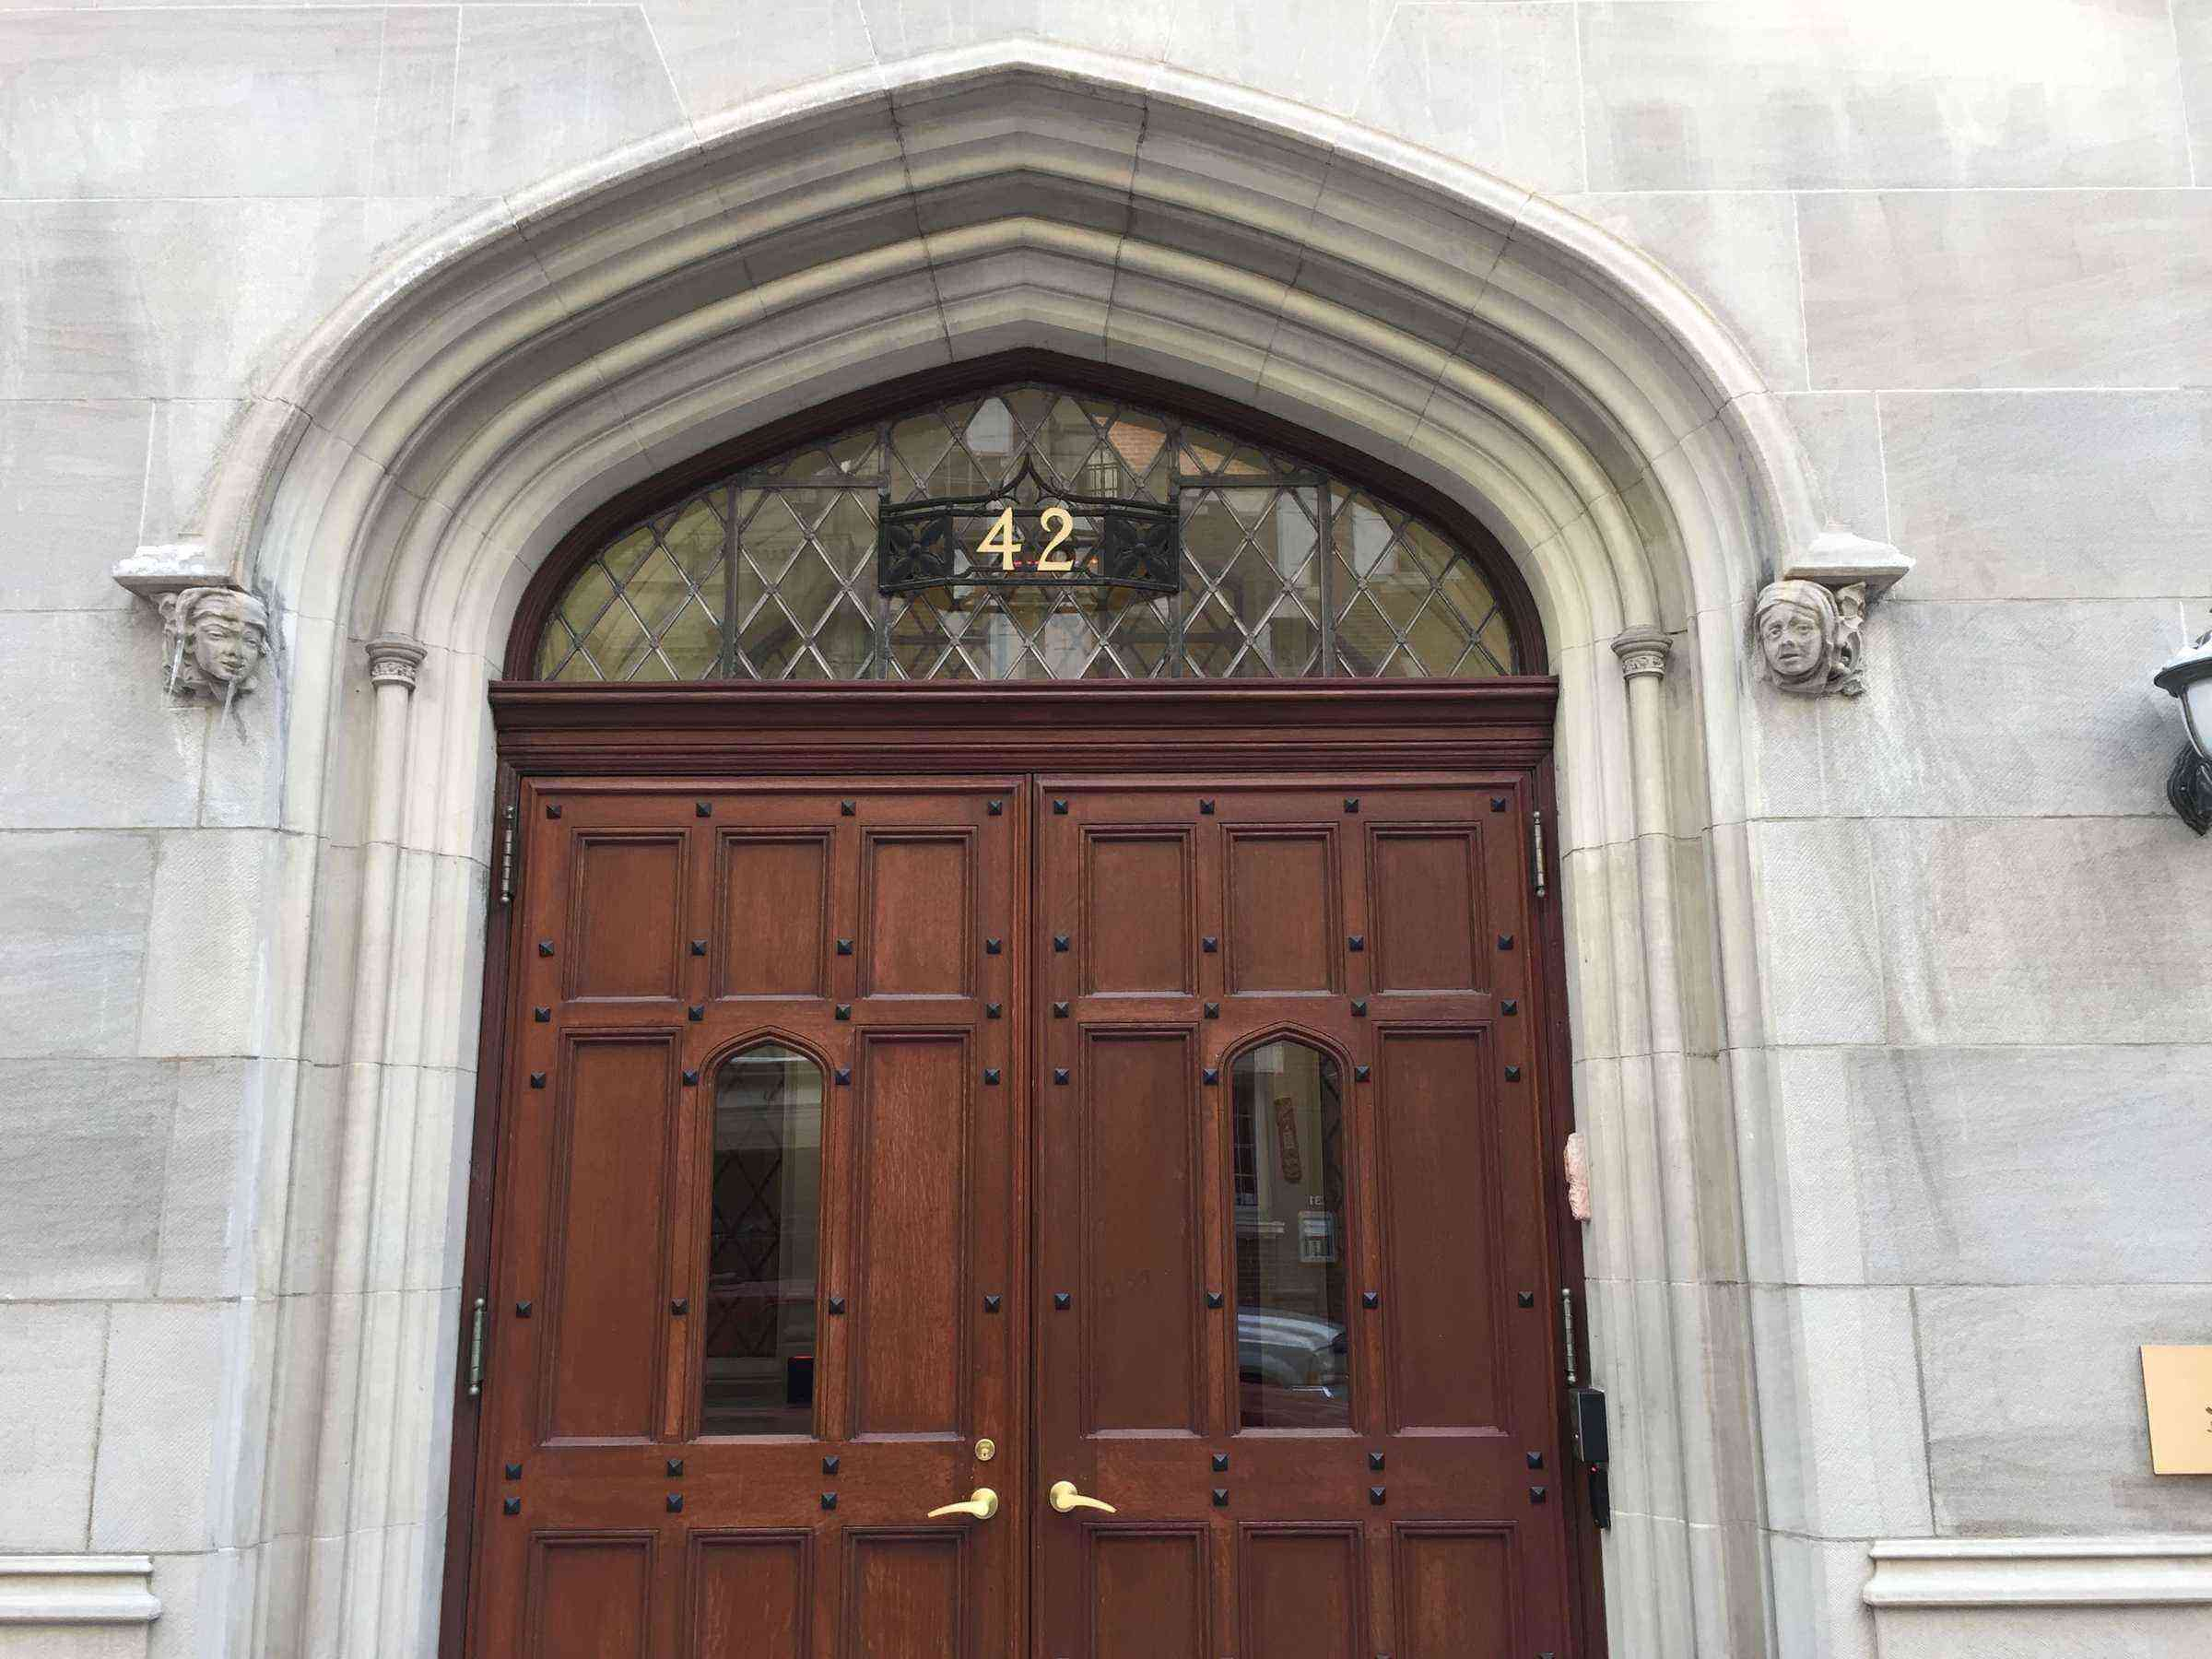 7) Jewish National Fund doorway, flanked by gargoyles